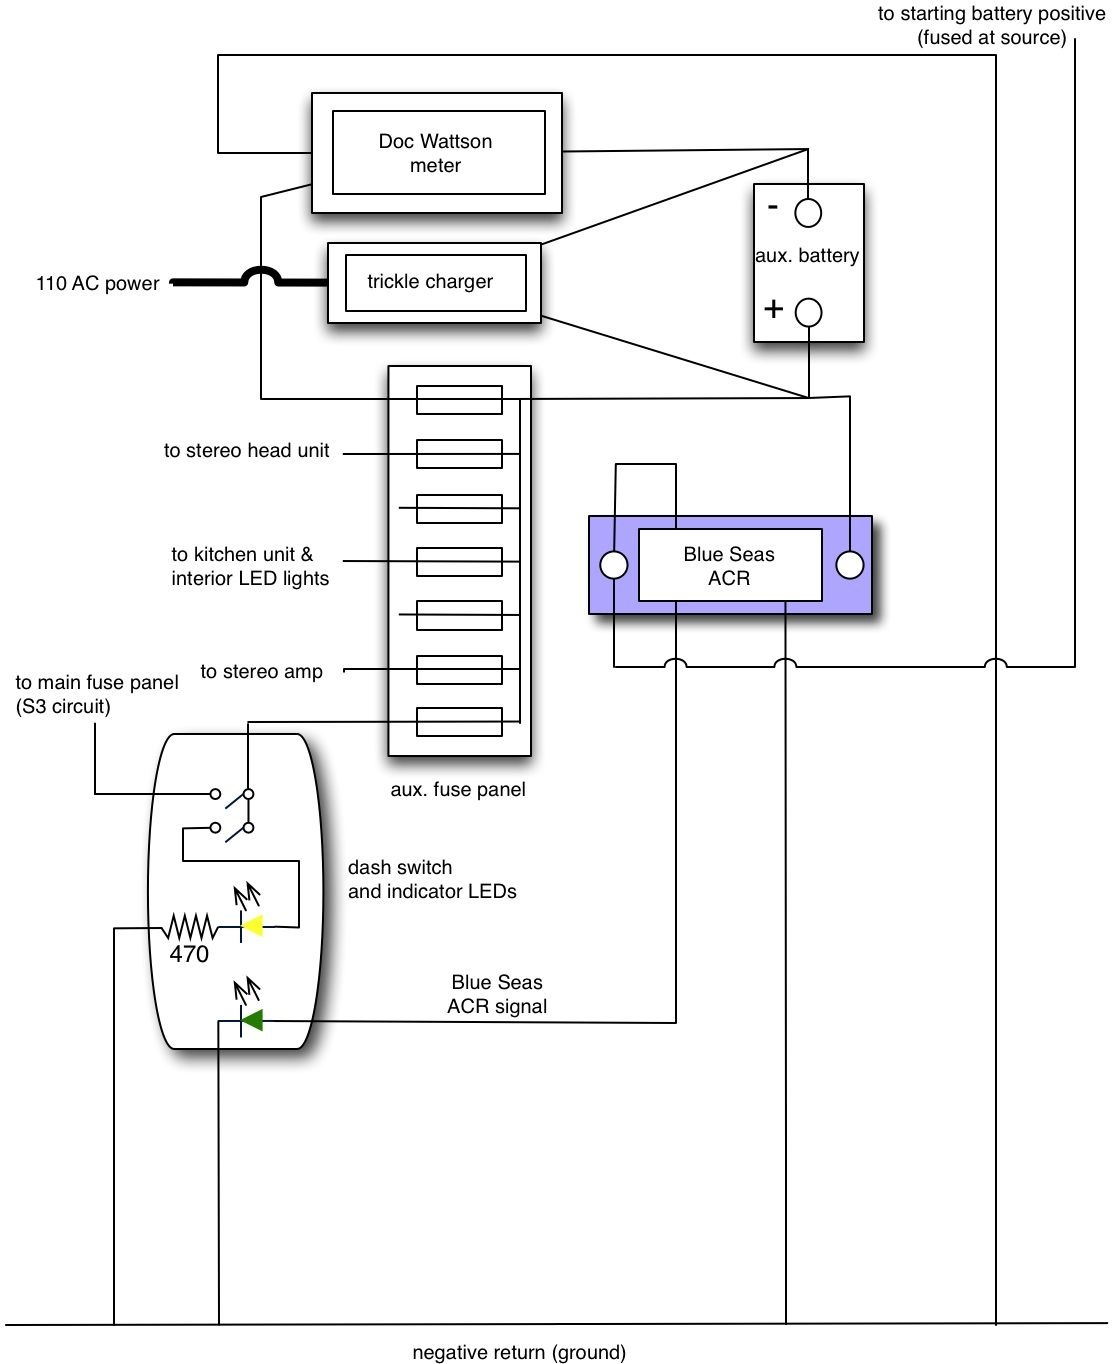 vanagon trailer wiring diagram vanagon dash wiring - google search | vanagon | wire ... 1990 vanagon alternator wiring diagram #6